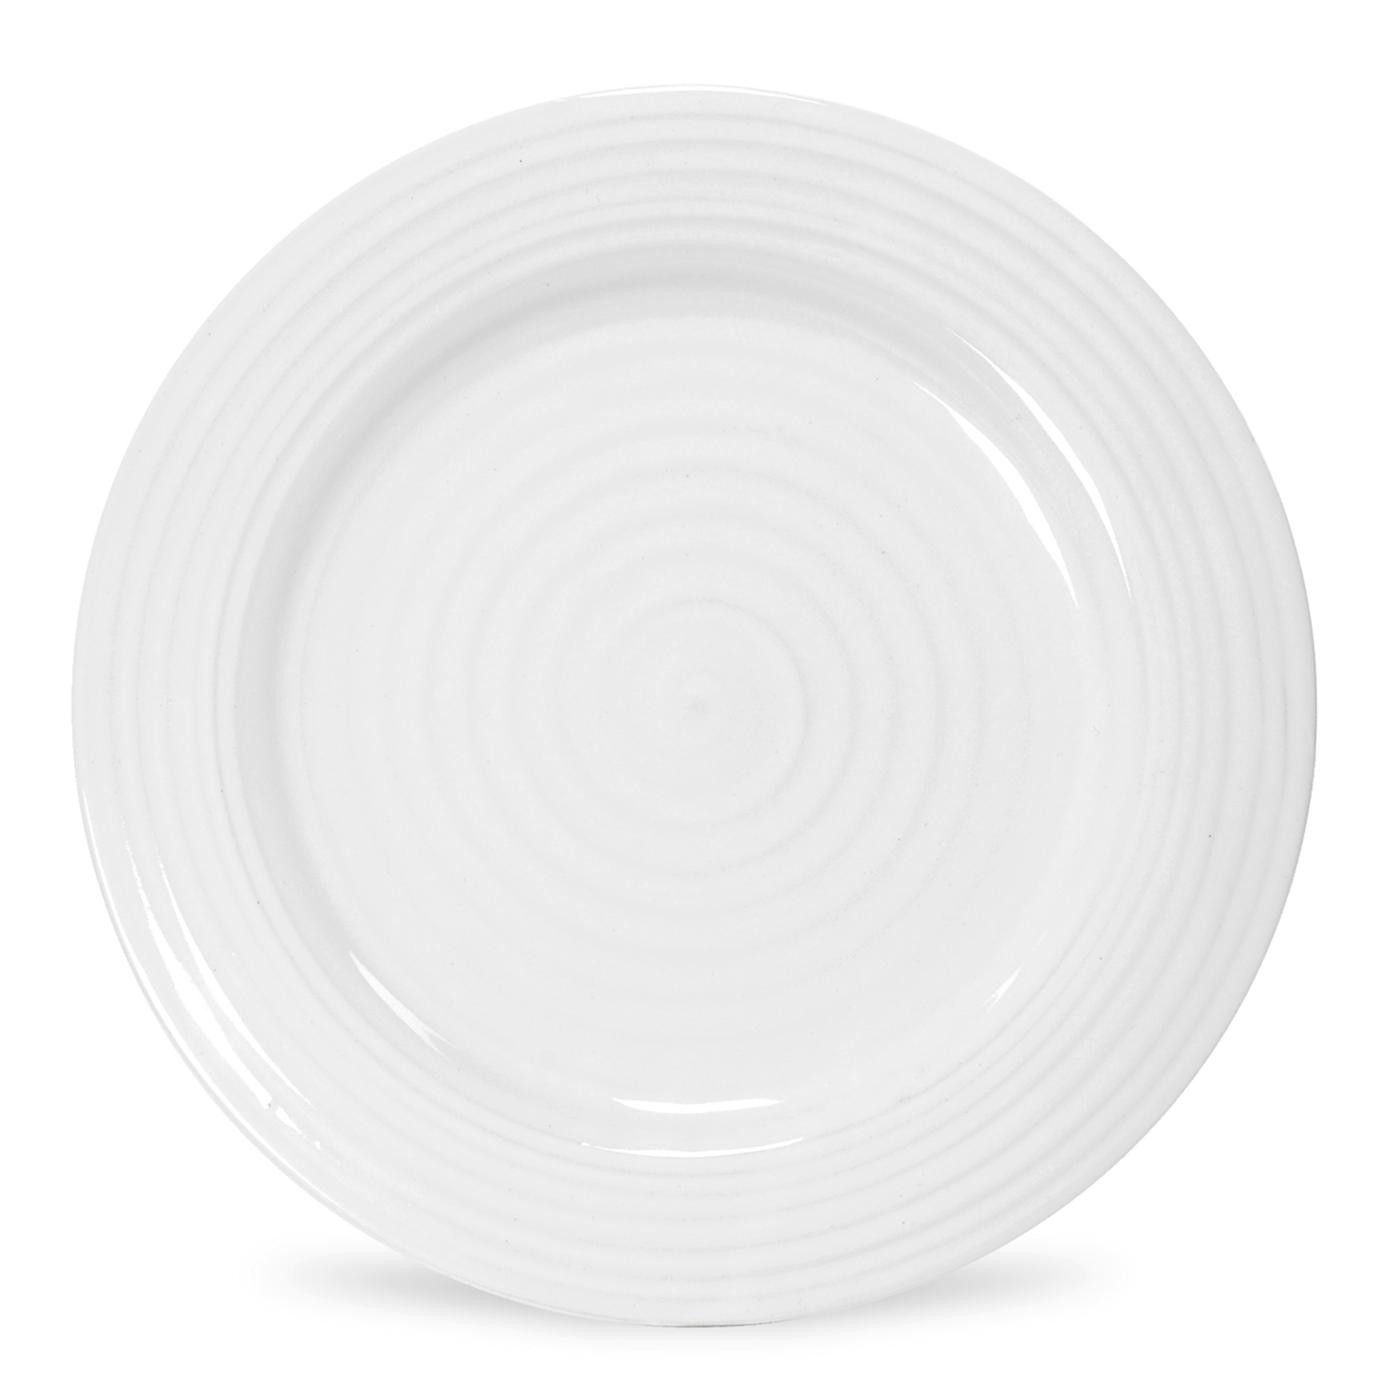 Sophie Conran for Portmeirion White Plate 8 inches Set of 4 - Portmeirion UK - Plate HD PNG